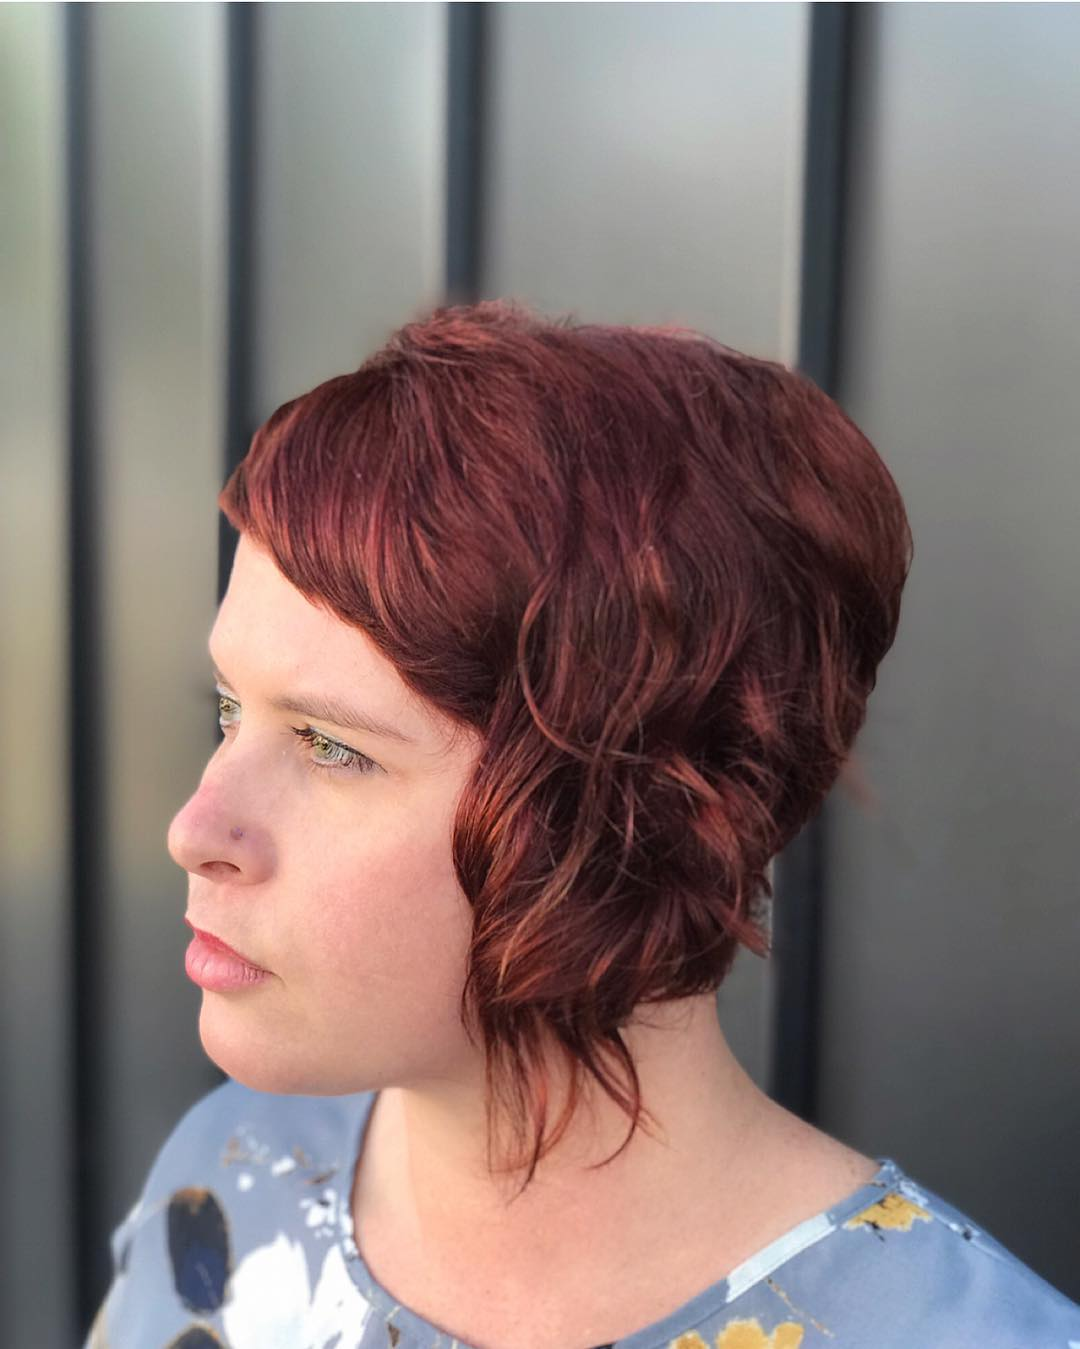 Pixie haircut for square face